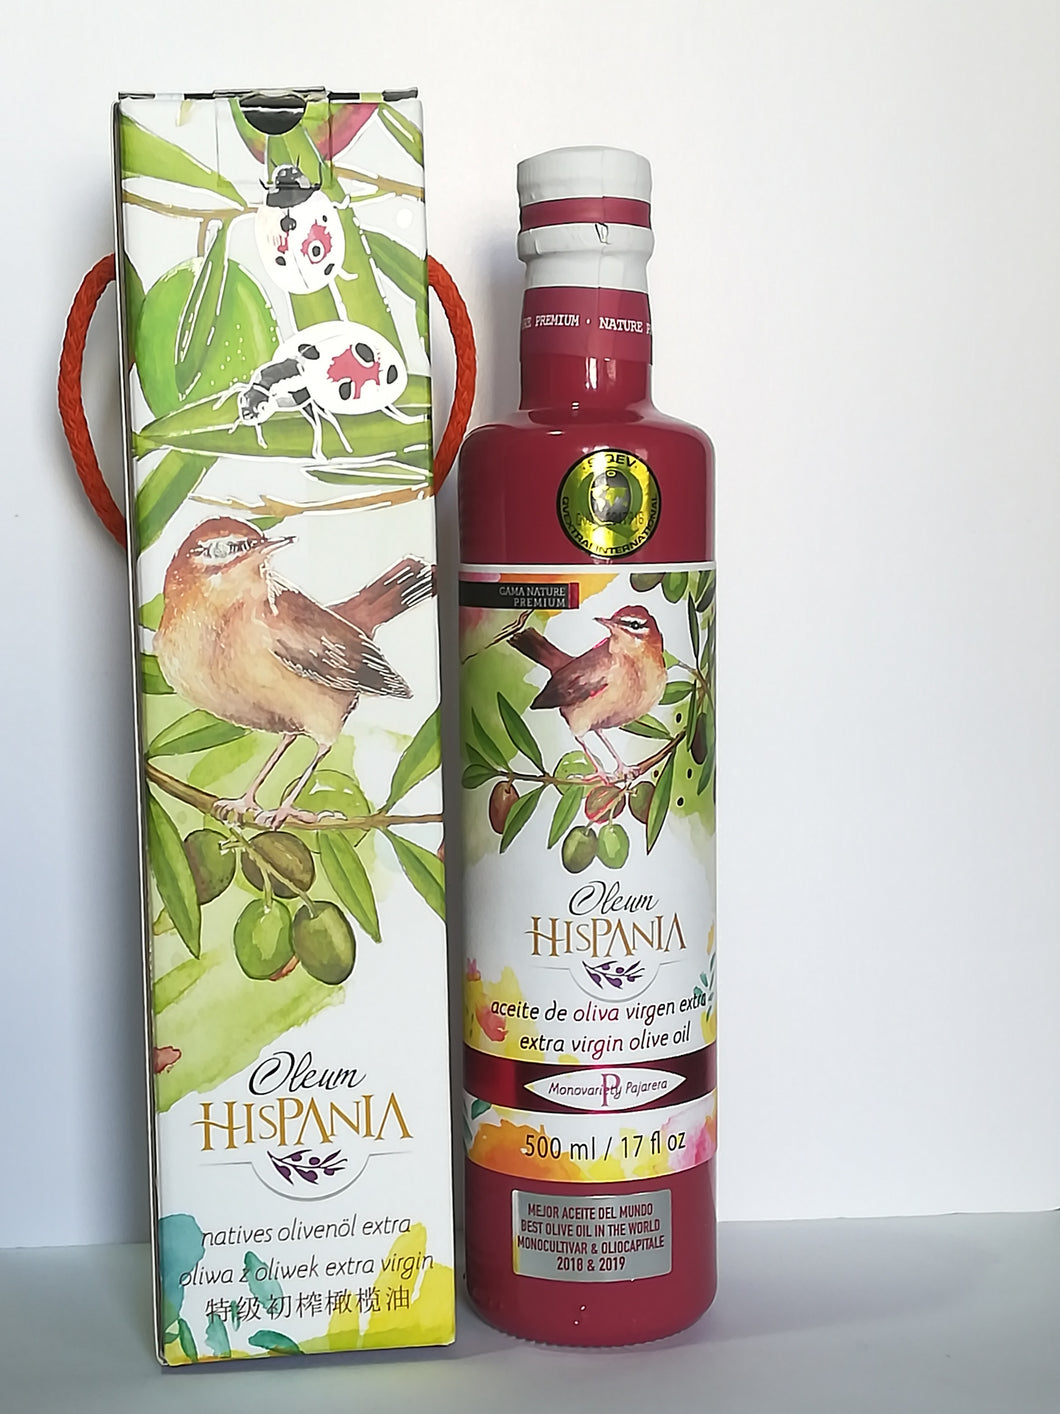 Estuche Botella Nature Premium Pajarera 500ml  #  Nature Premium Aviary Case bottle 500ml